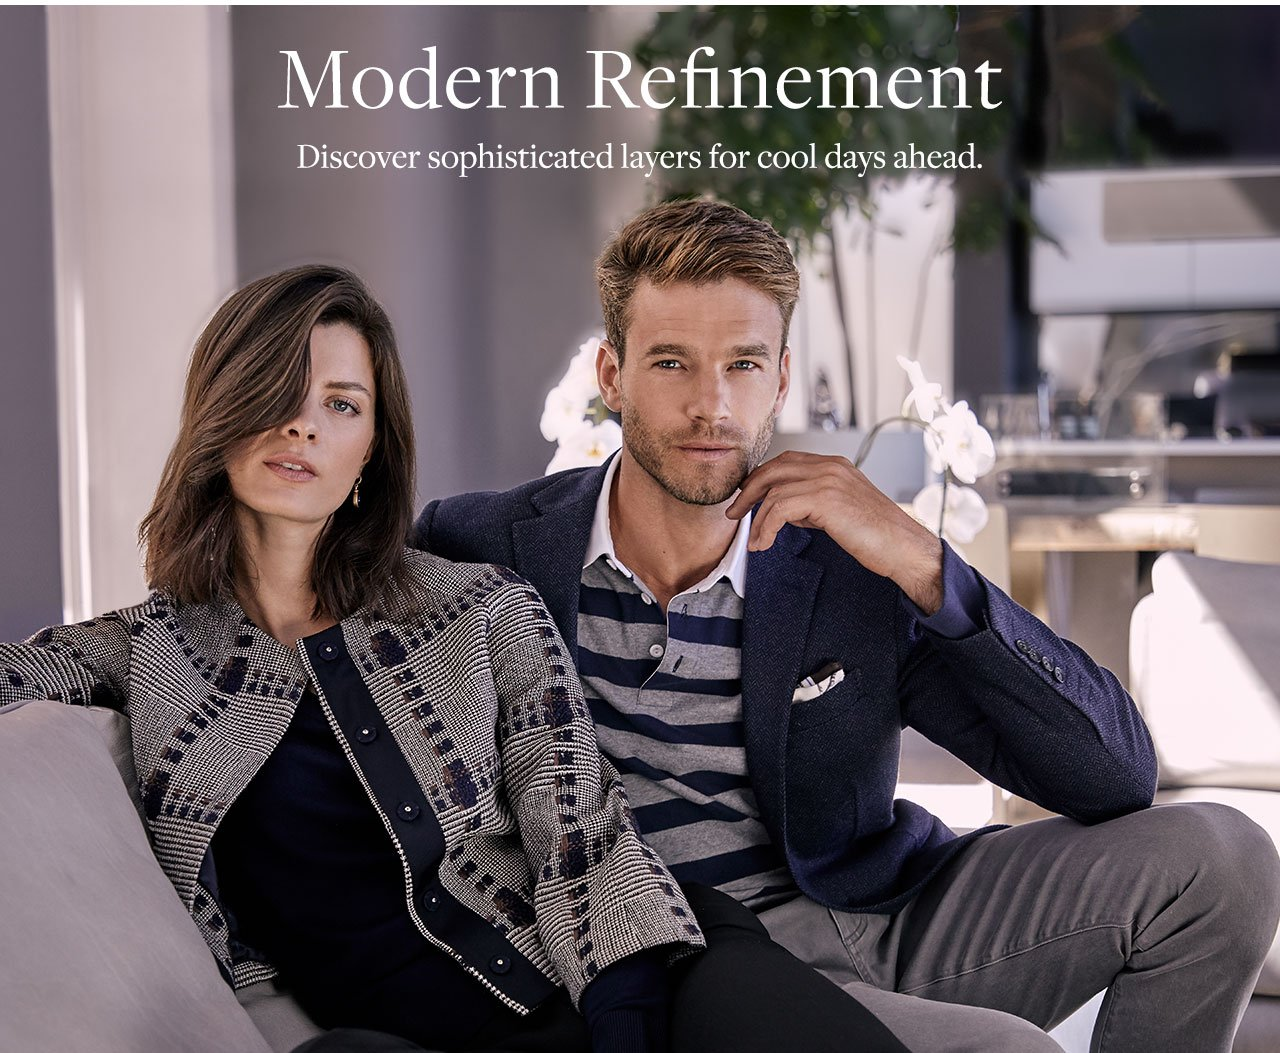 Modern Refinement - Discover sophisticated layers for cool days ahead.